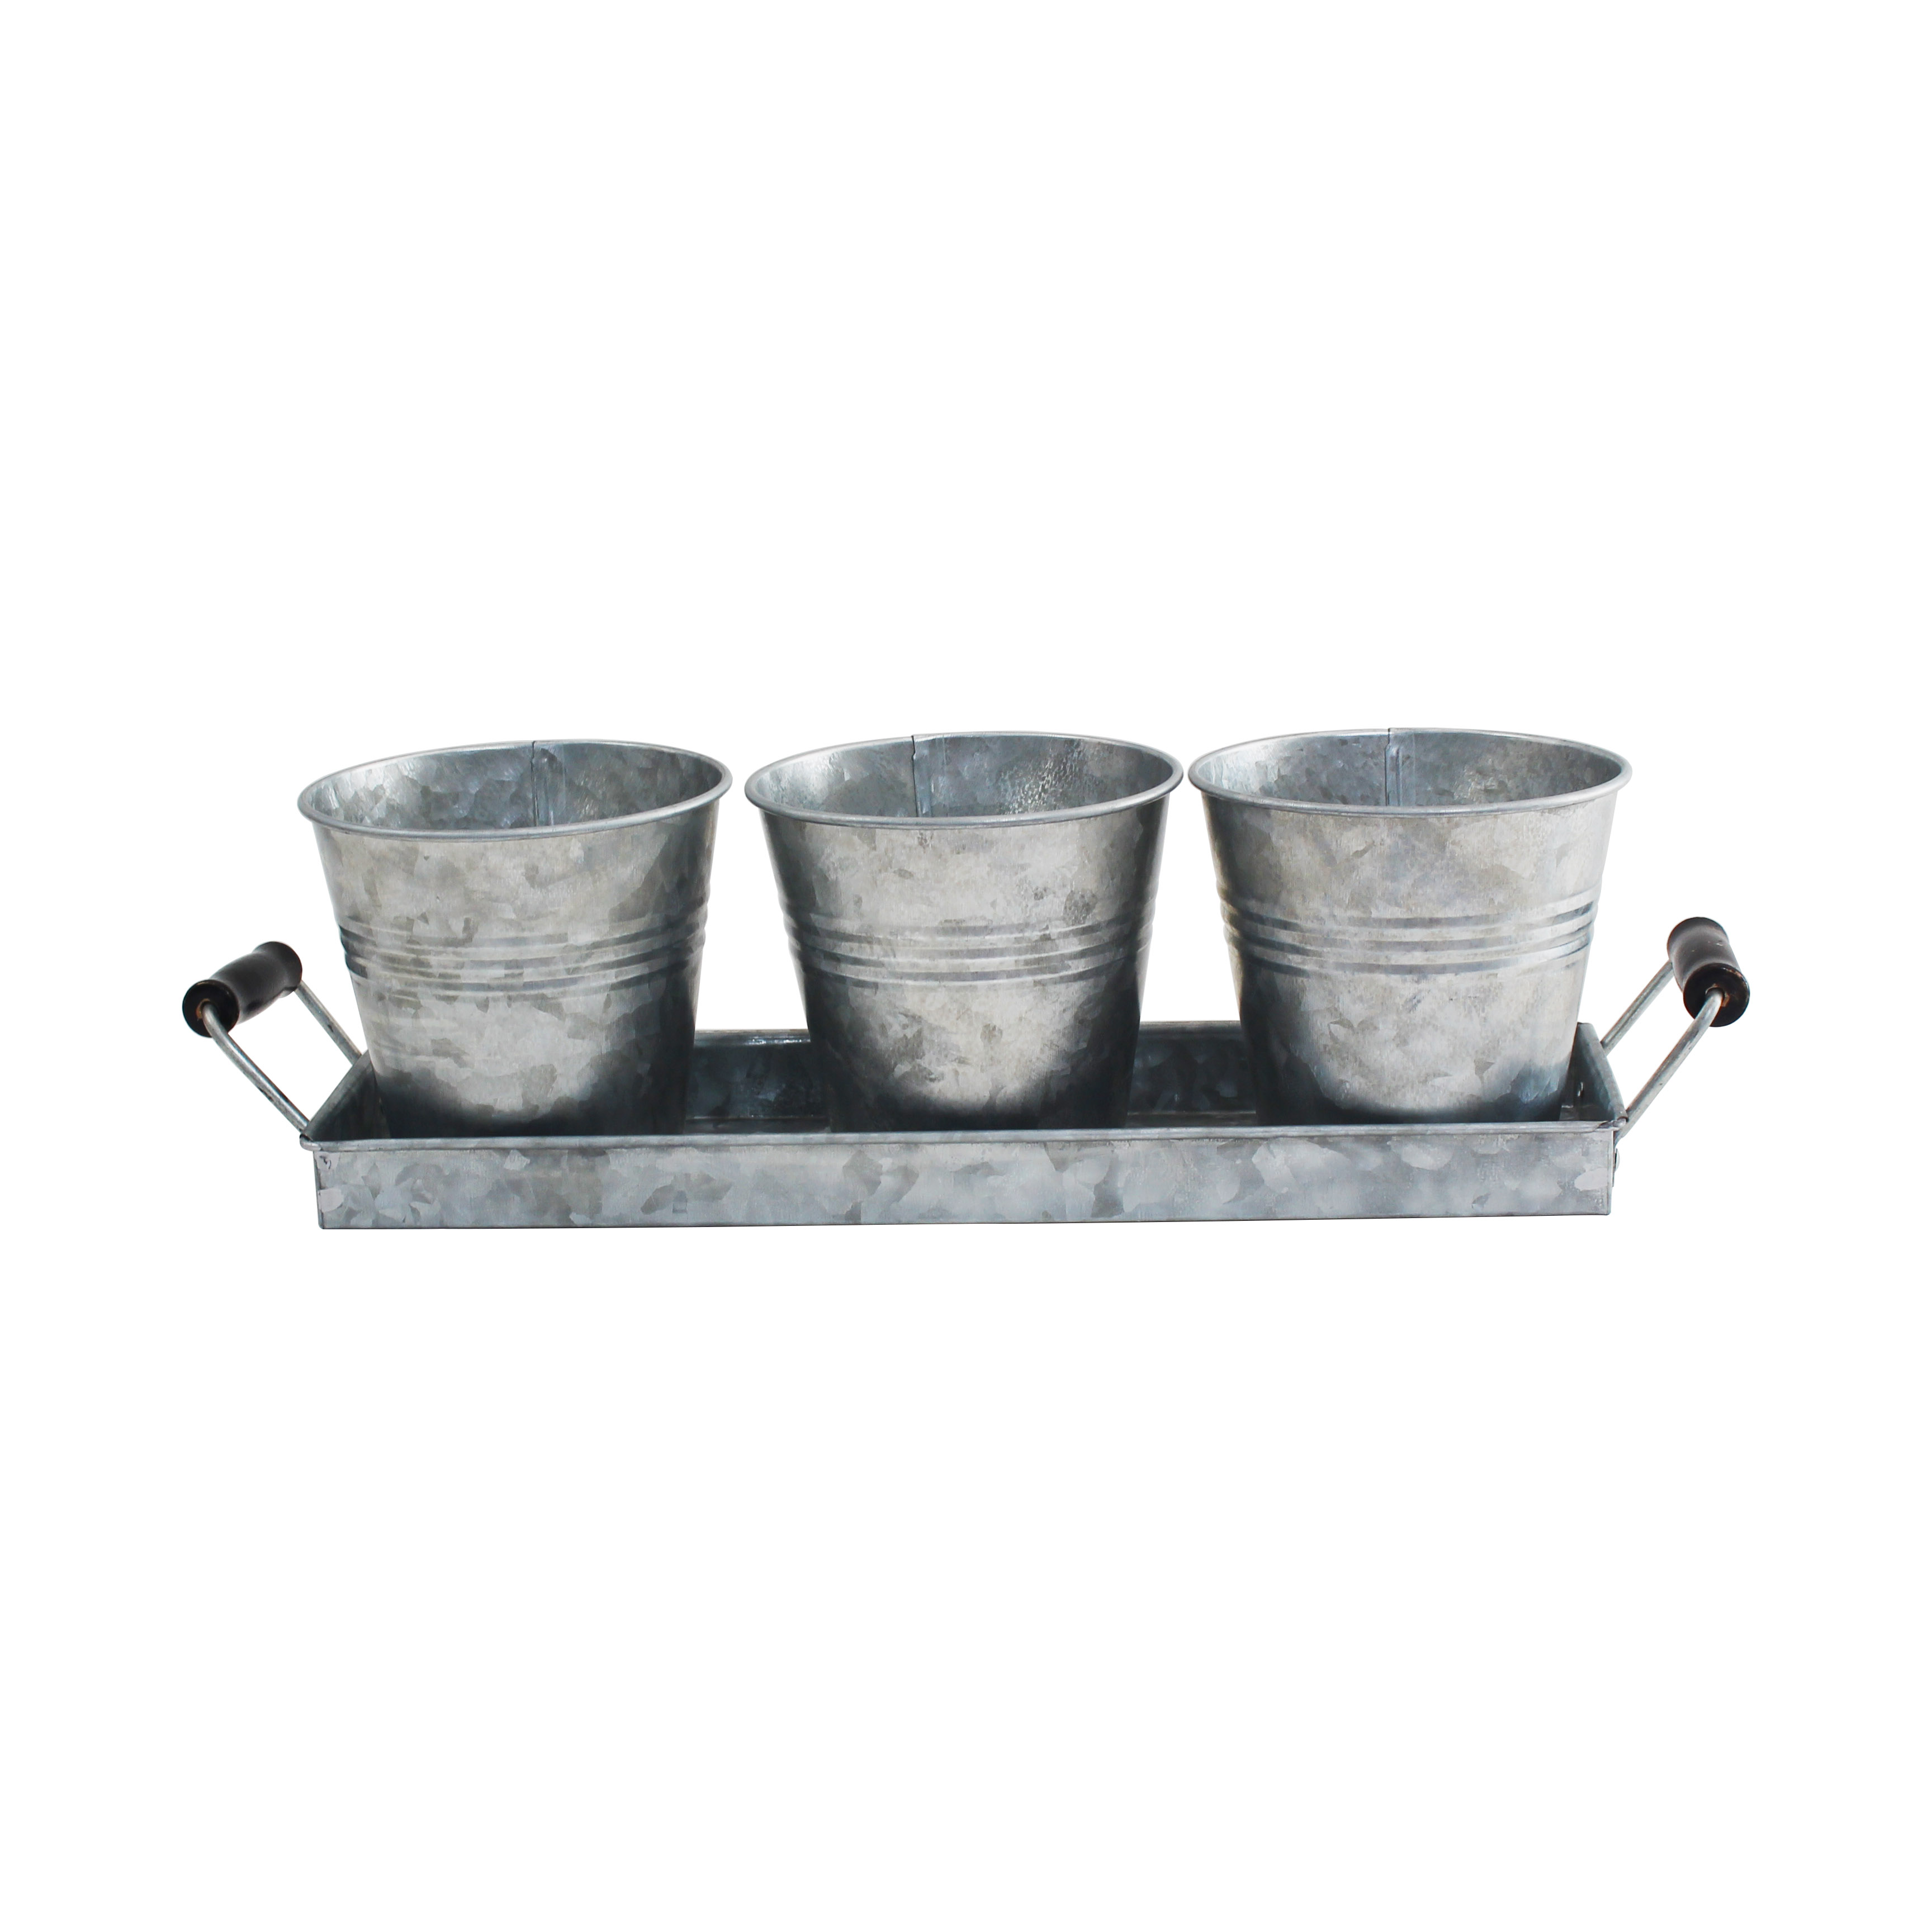 Set of 3 Galvanized Metal Windowsill Planters Herb Pots With Tray